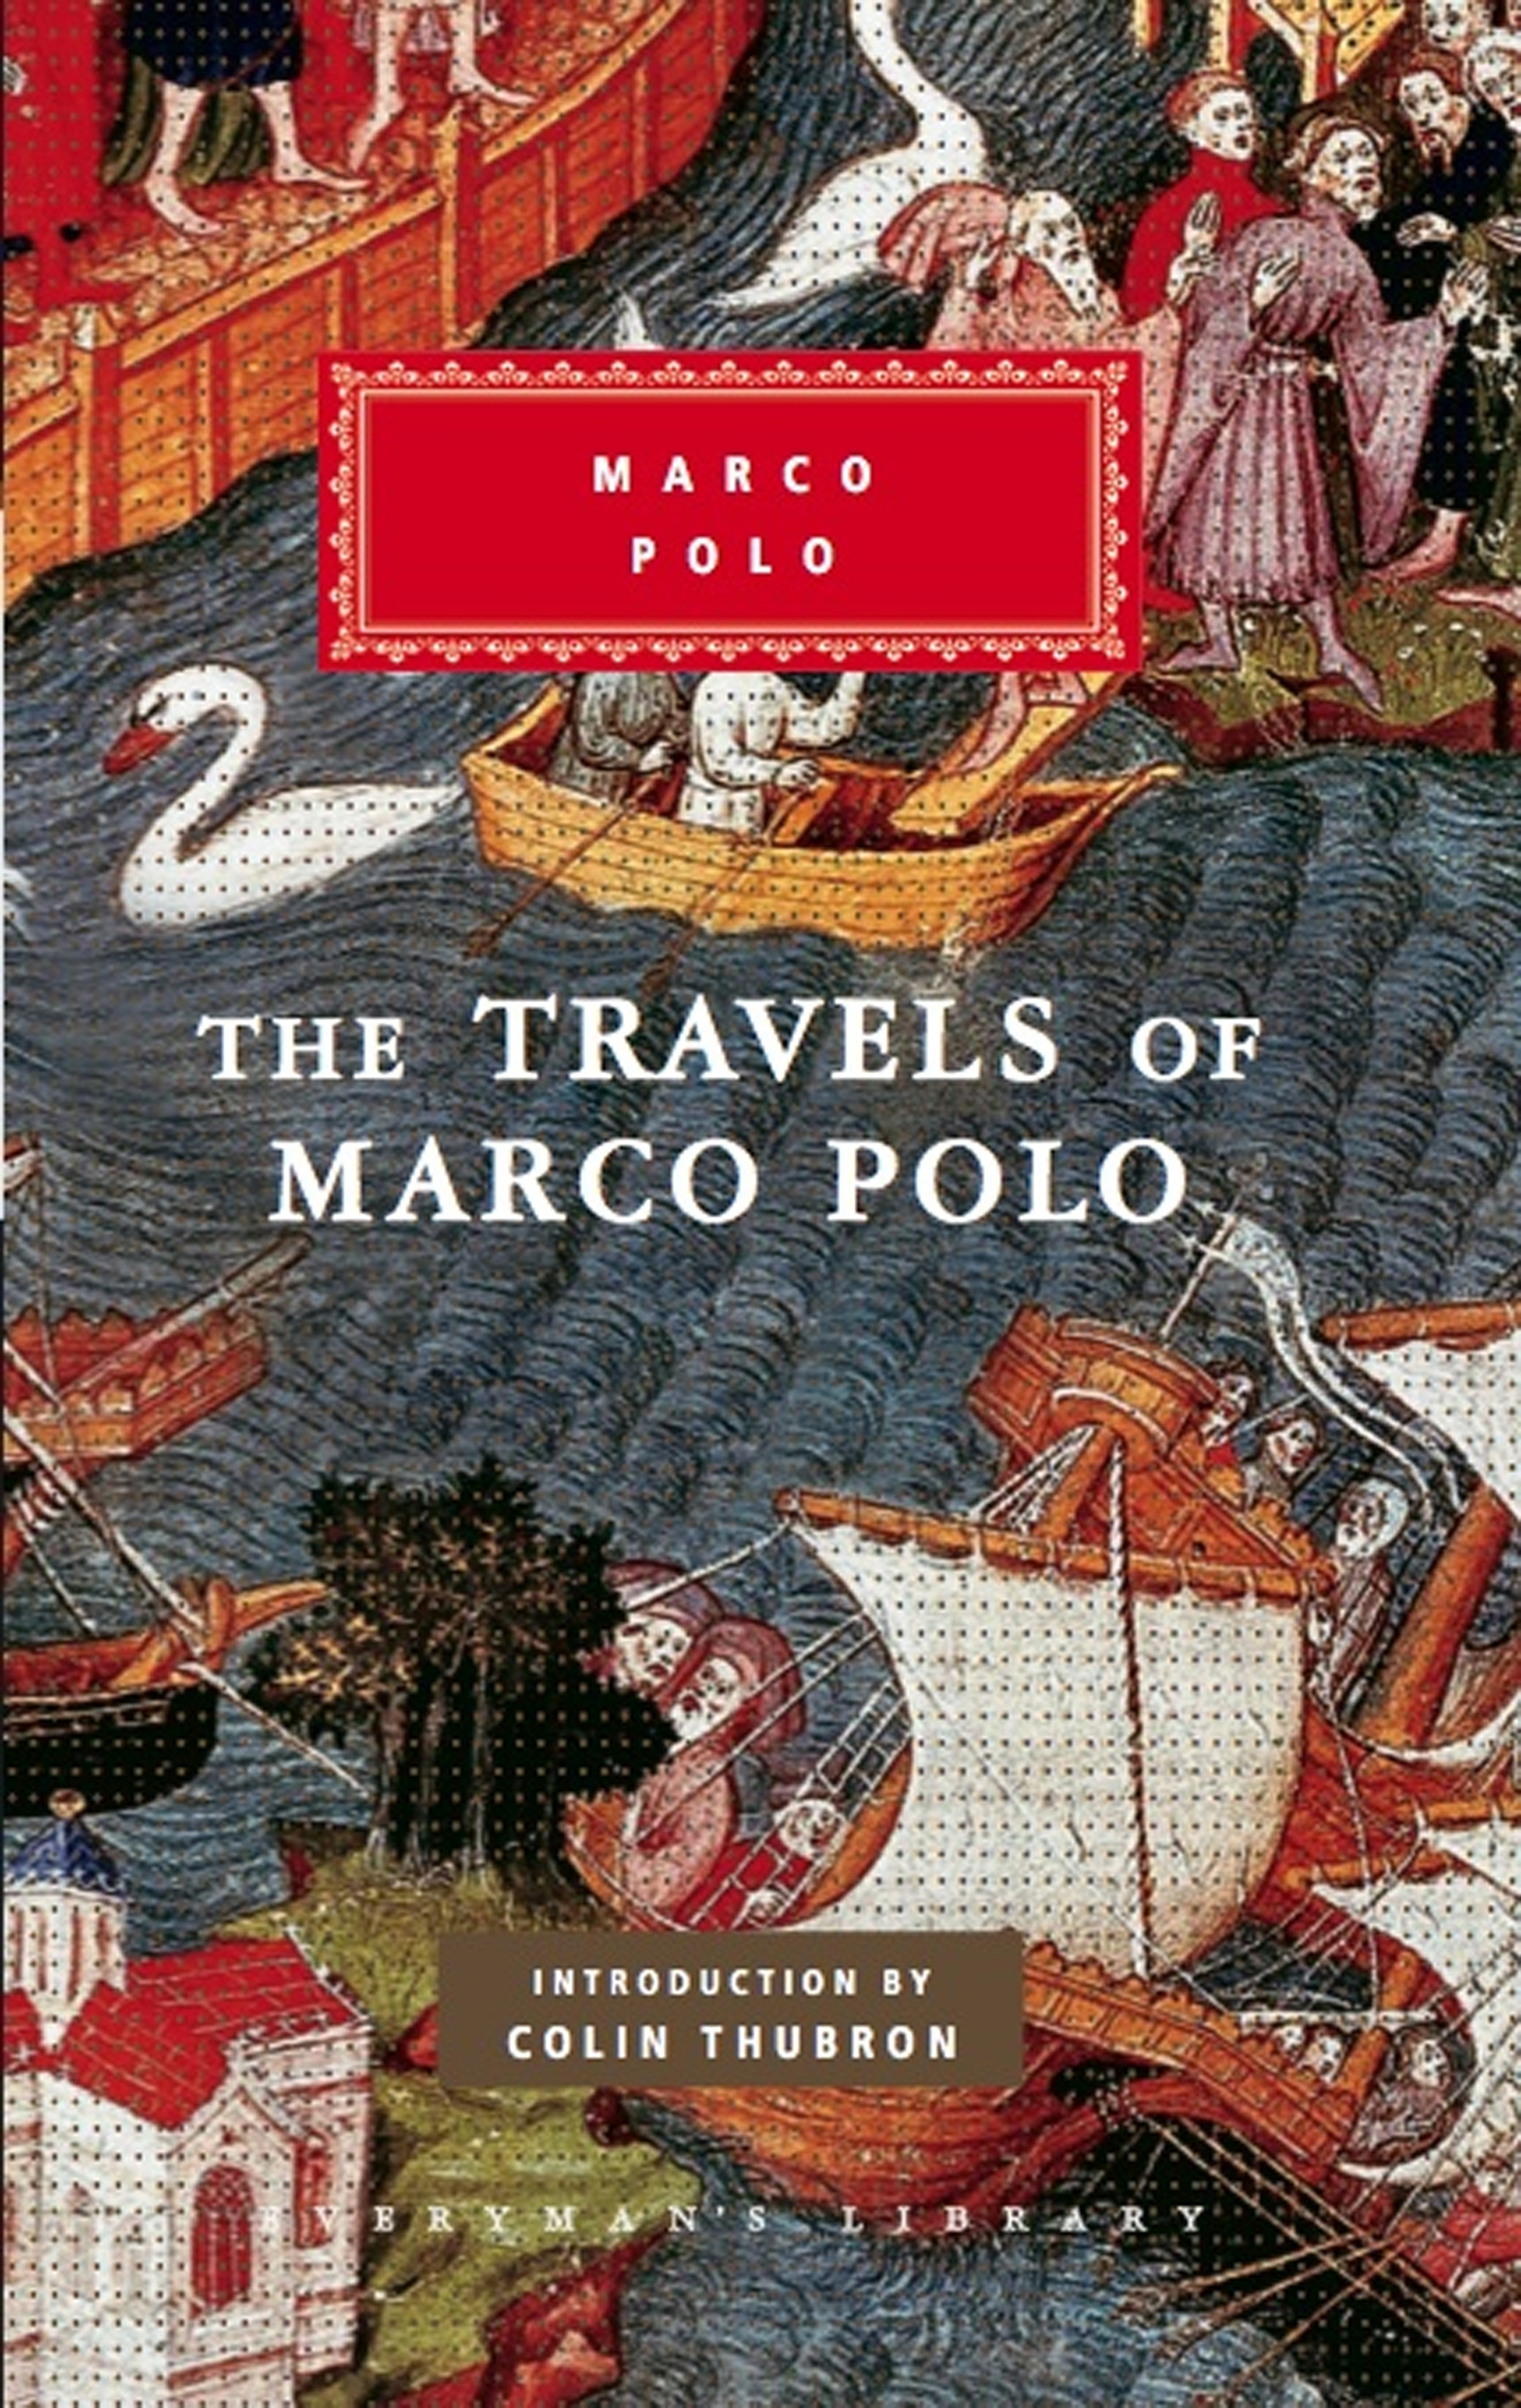 the travels of marco polo The travels of marco polo questions and answers - discover the enotescom community of teachers, mentors and students just like you that can answer any question you might have on the travels of.